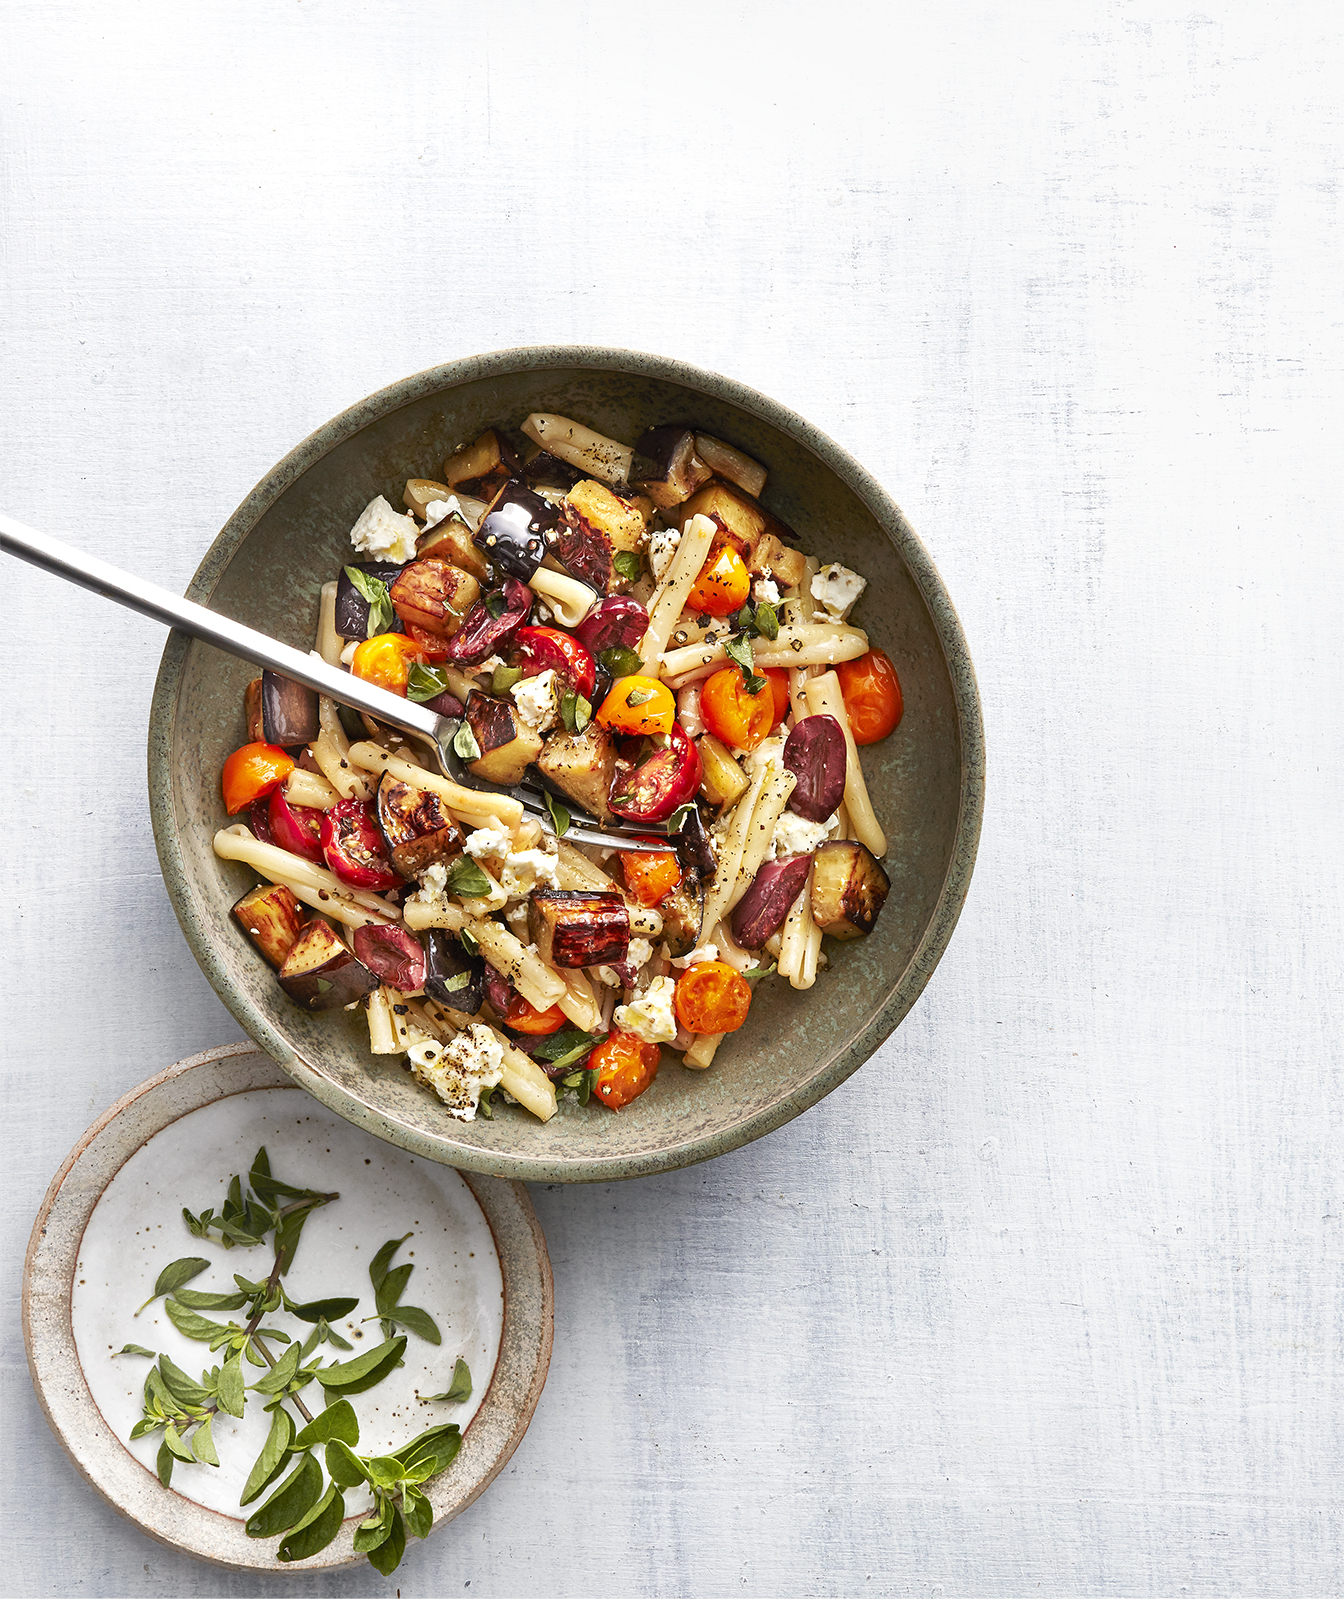 Roasted Eggplant and Olive Pasta Salad